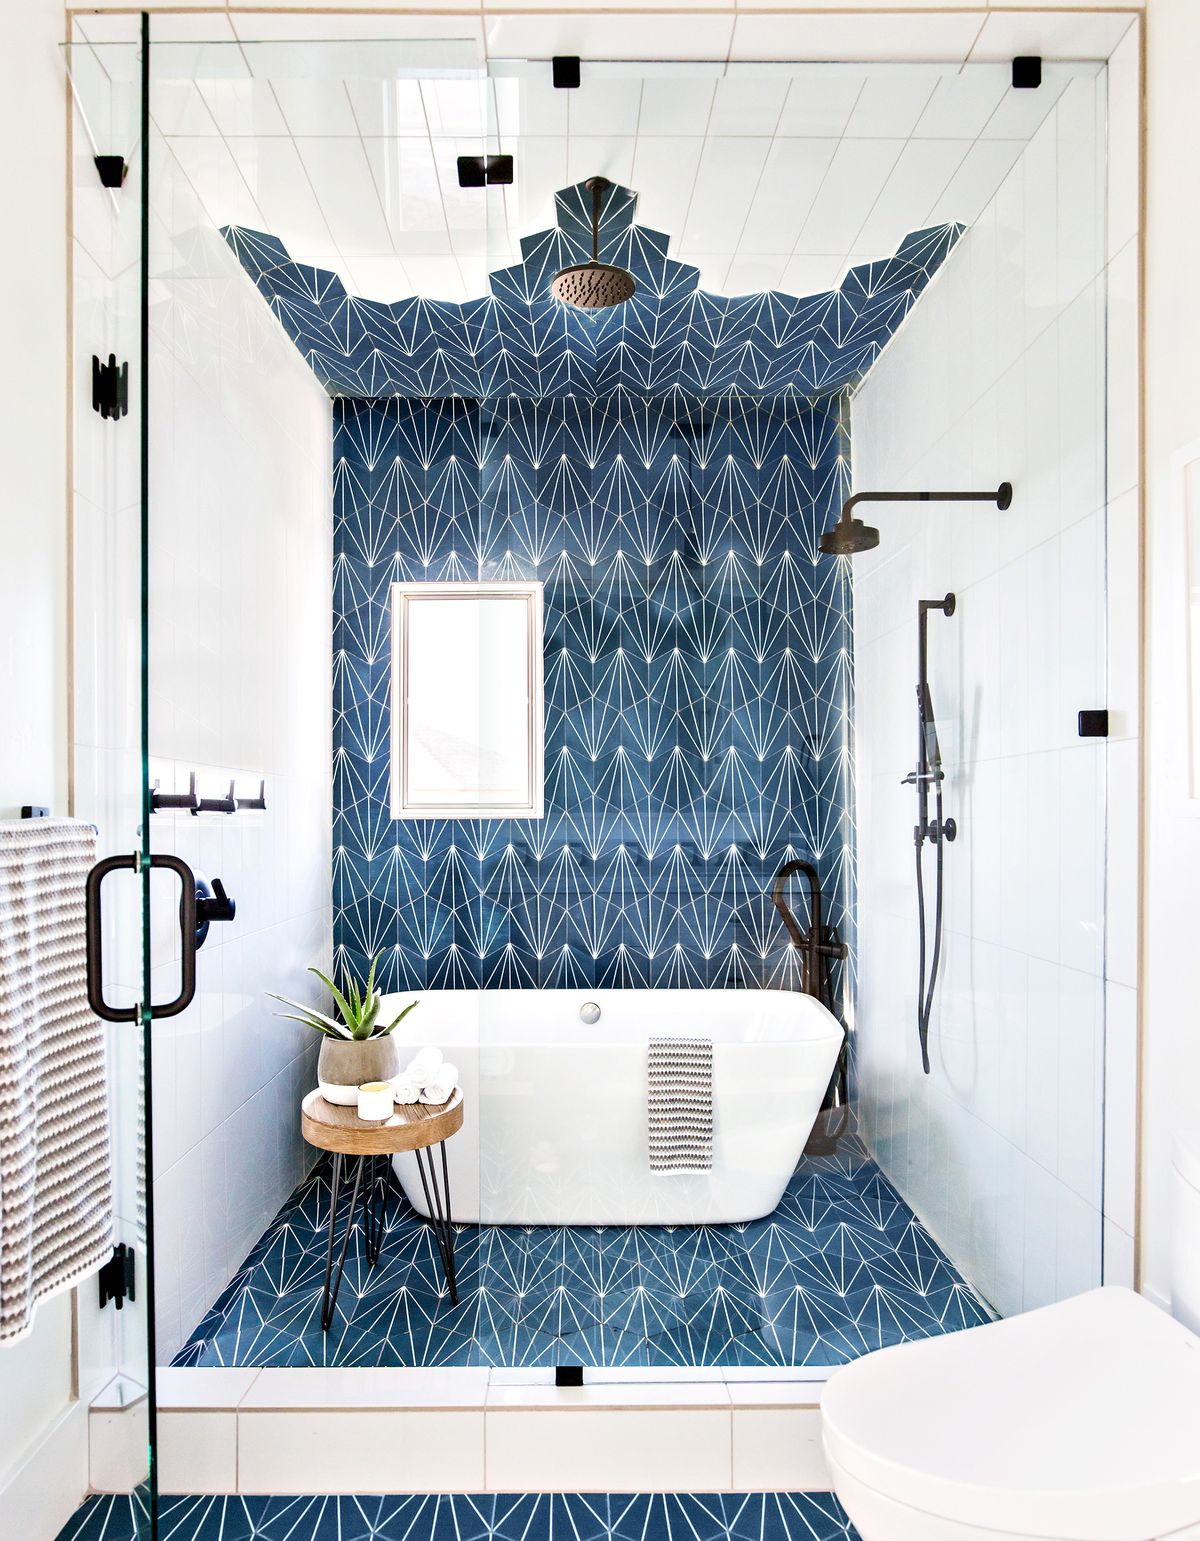 Wet area room in a bathroom